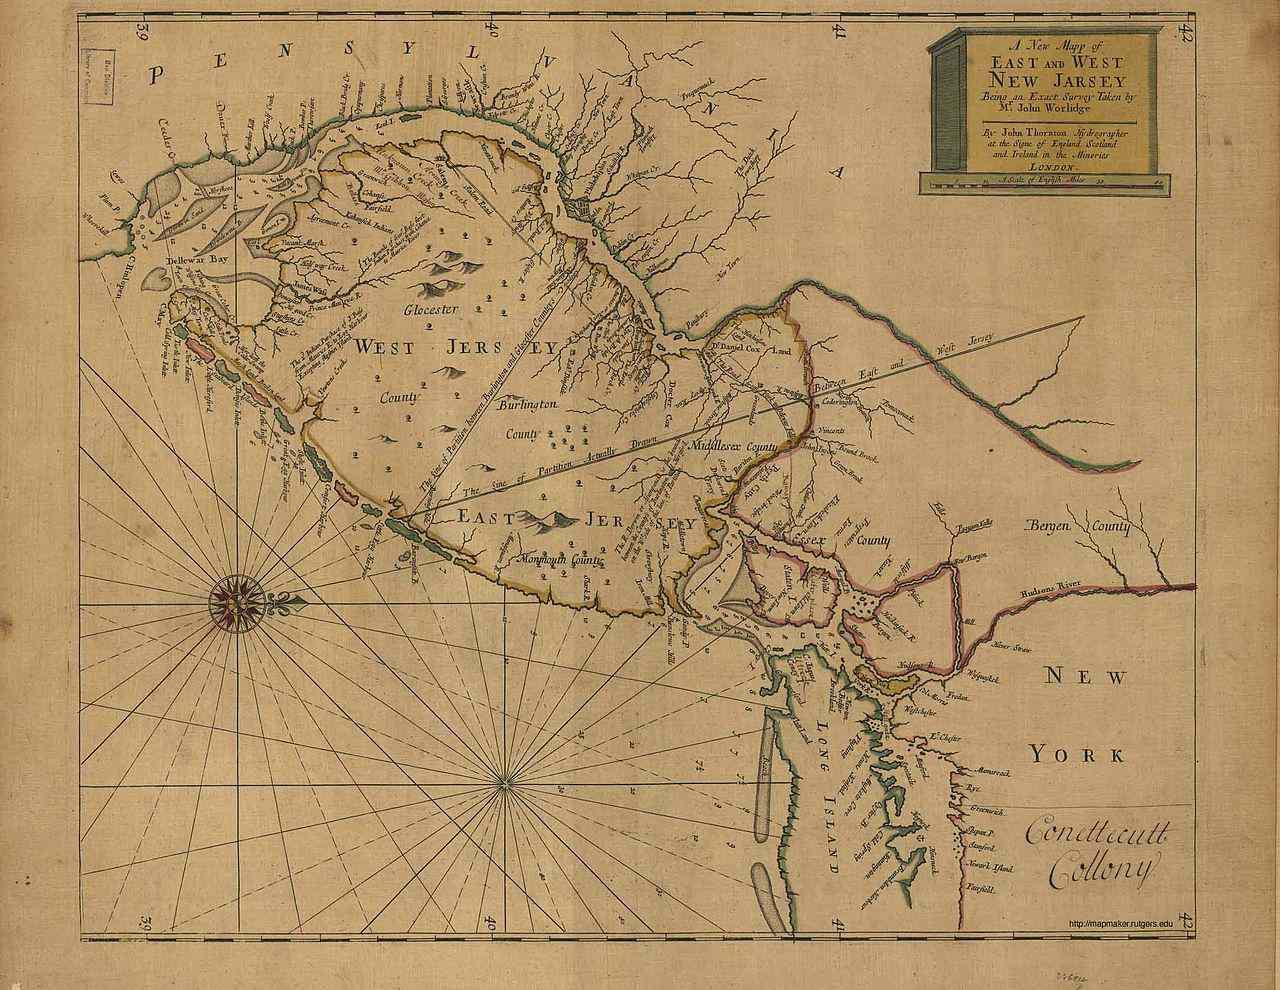 Map of East and West Jersey in 1706